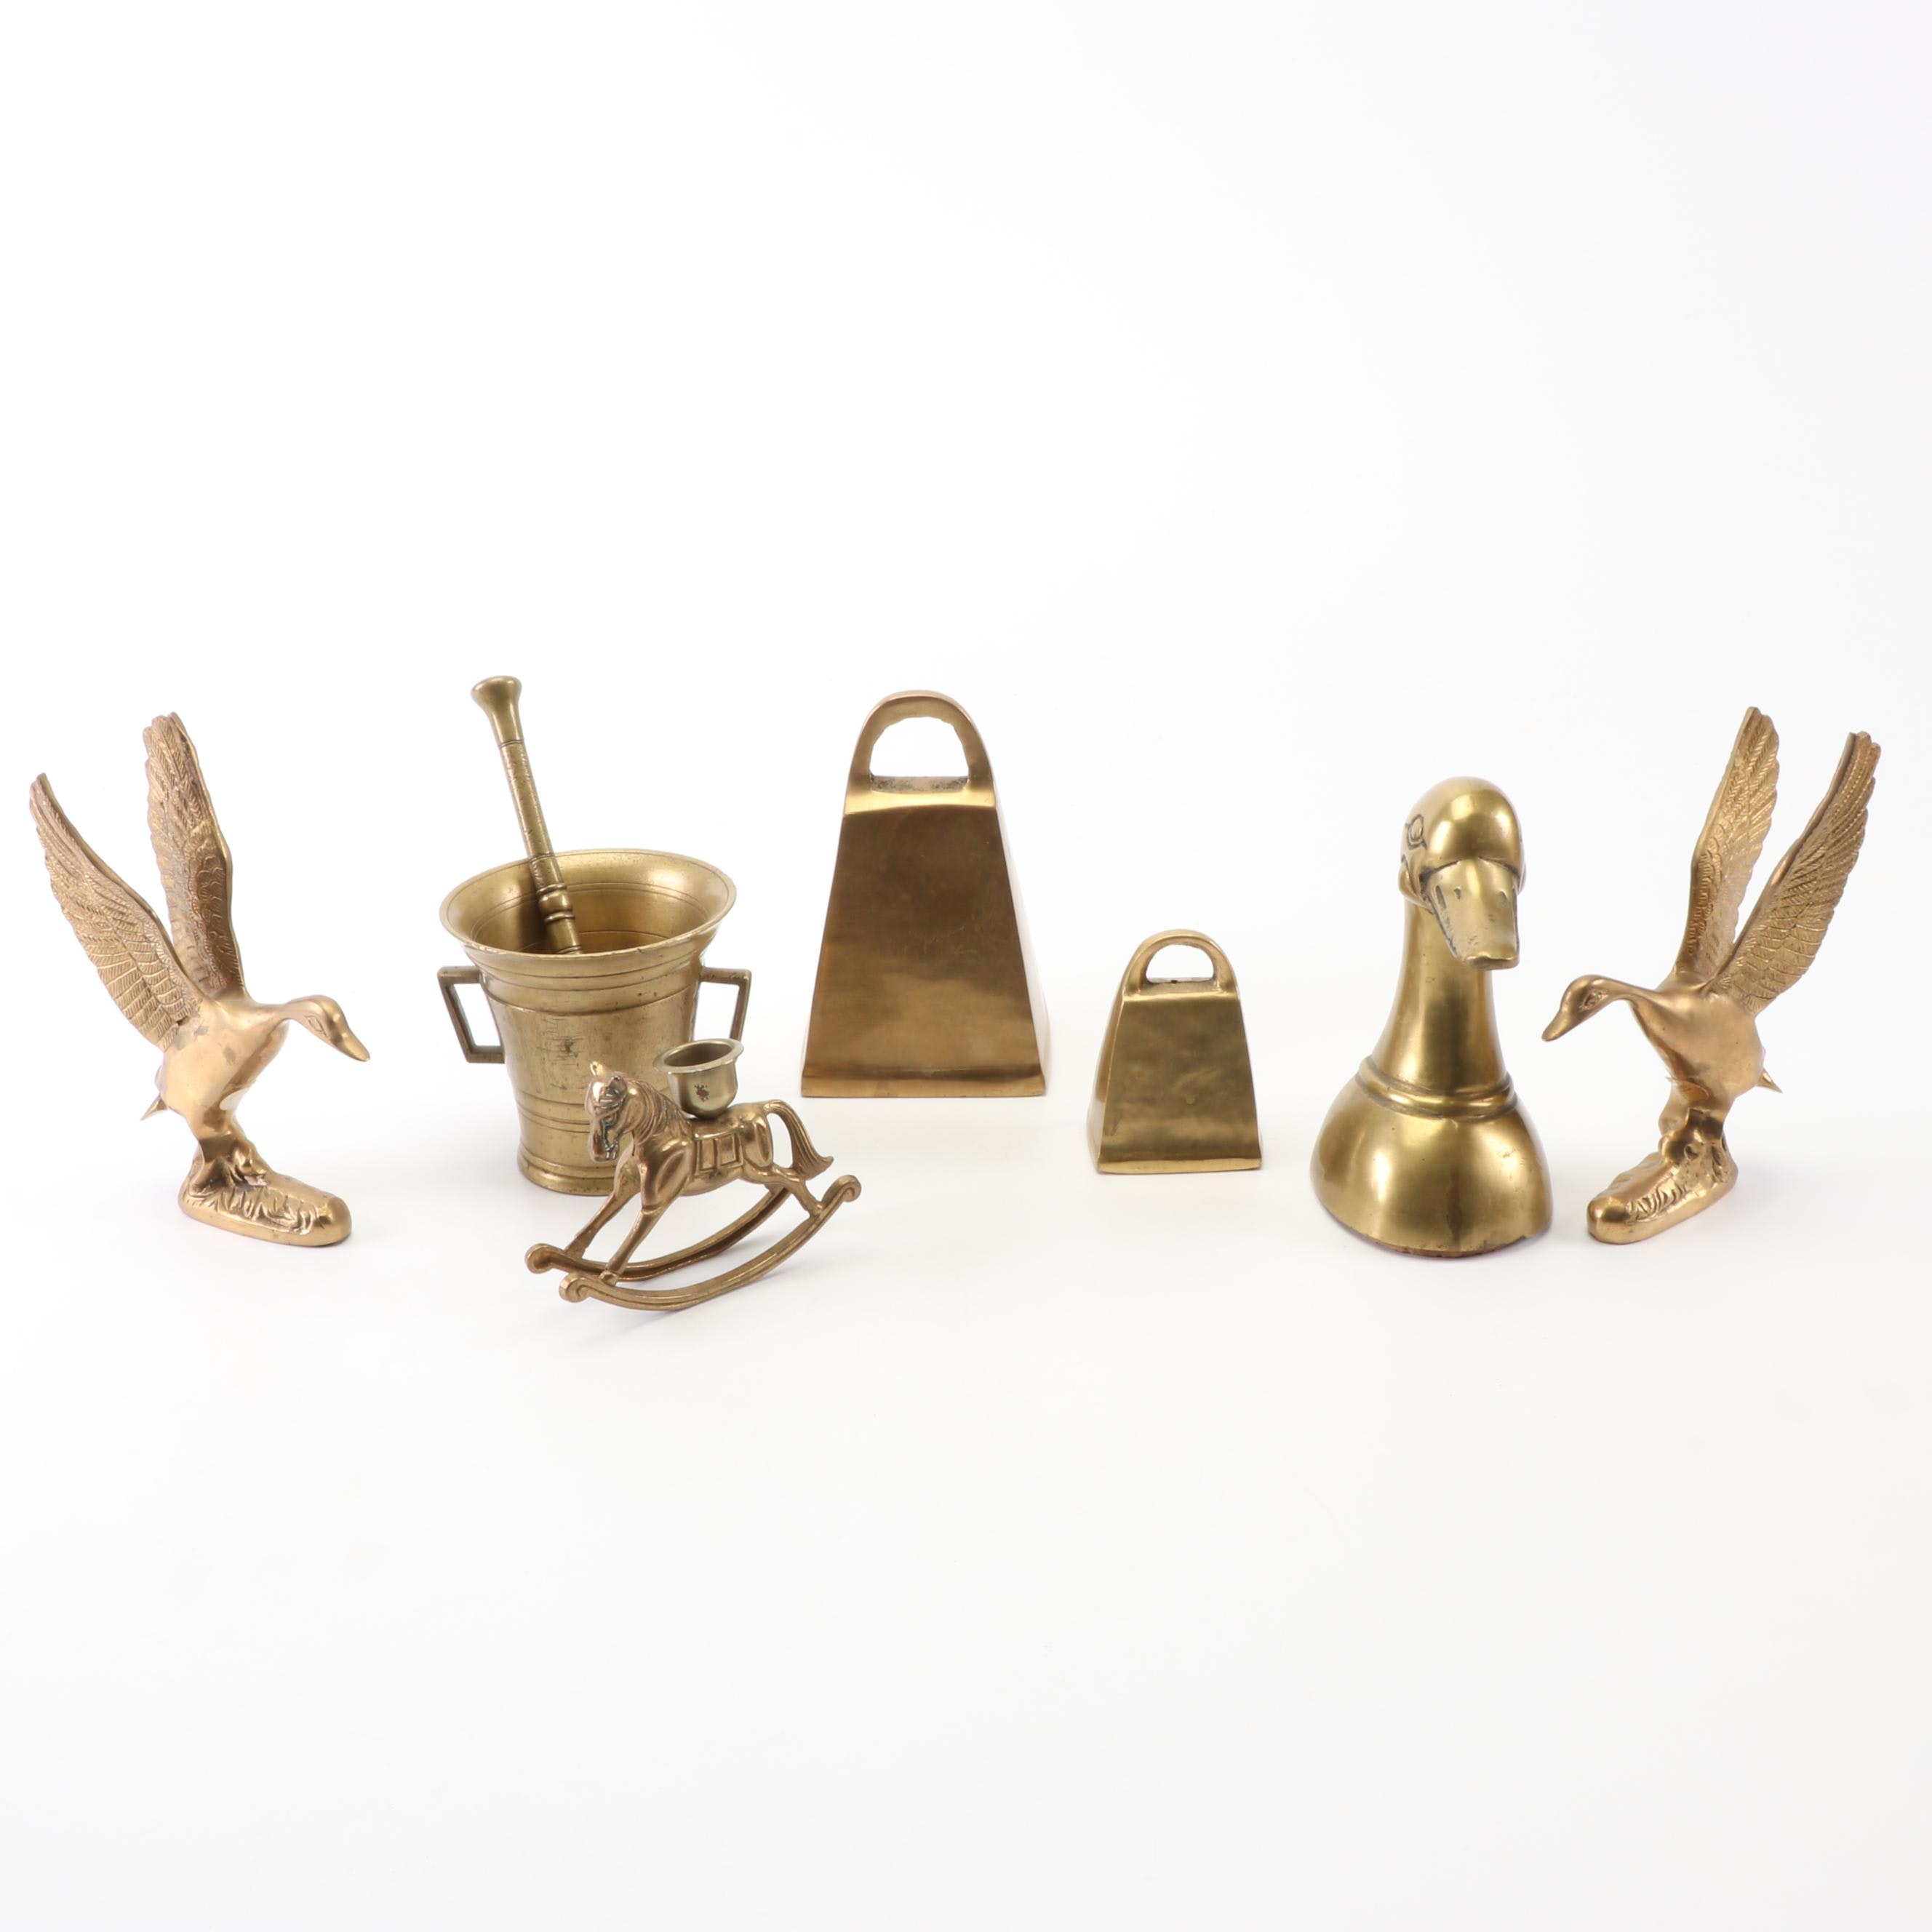 Brass Figurines and Bells featuring Hosley